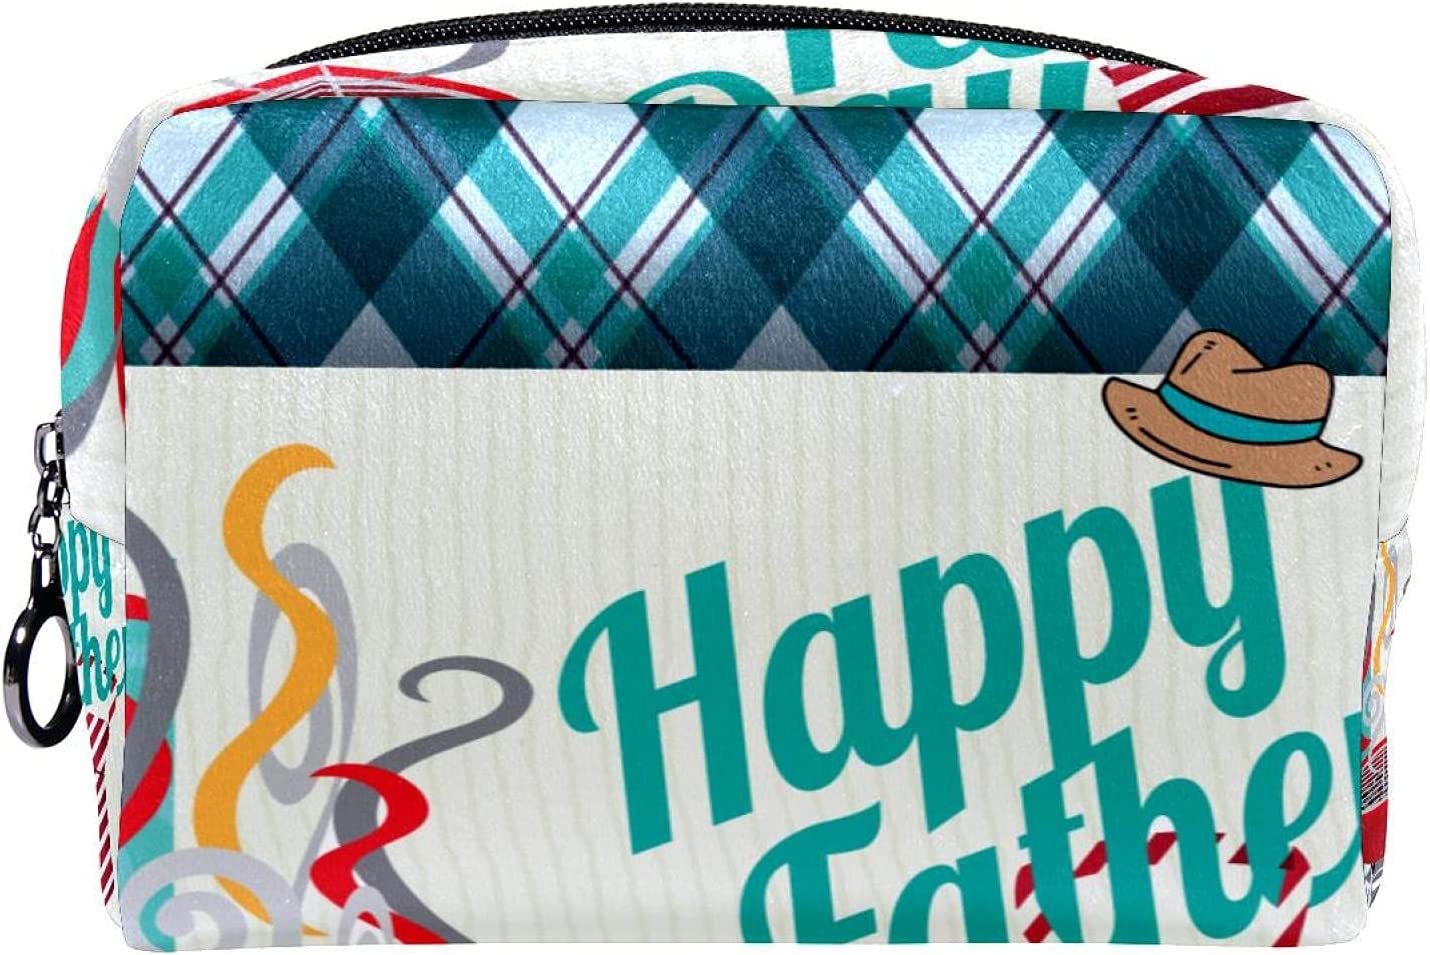 Makeup Toiletry Bag Purse Clearance SALE! Limited time! Max 49% OFF day father's happy Cosmetic